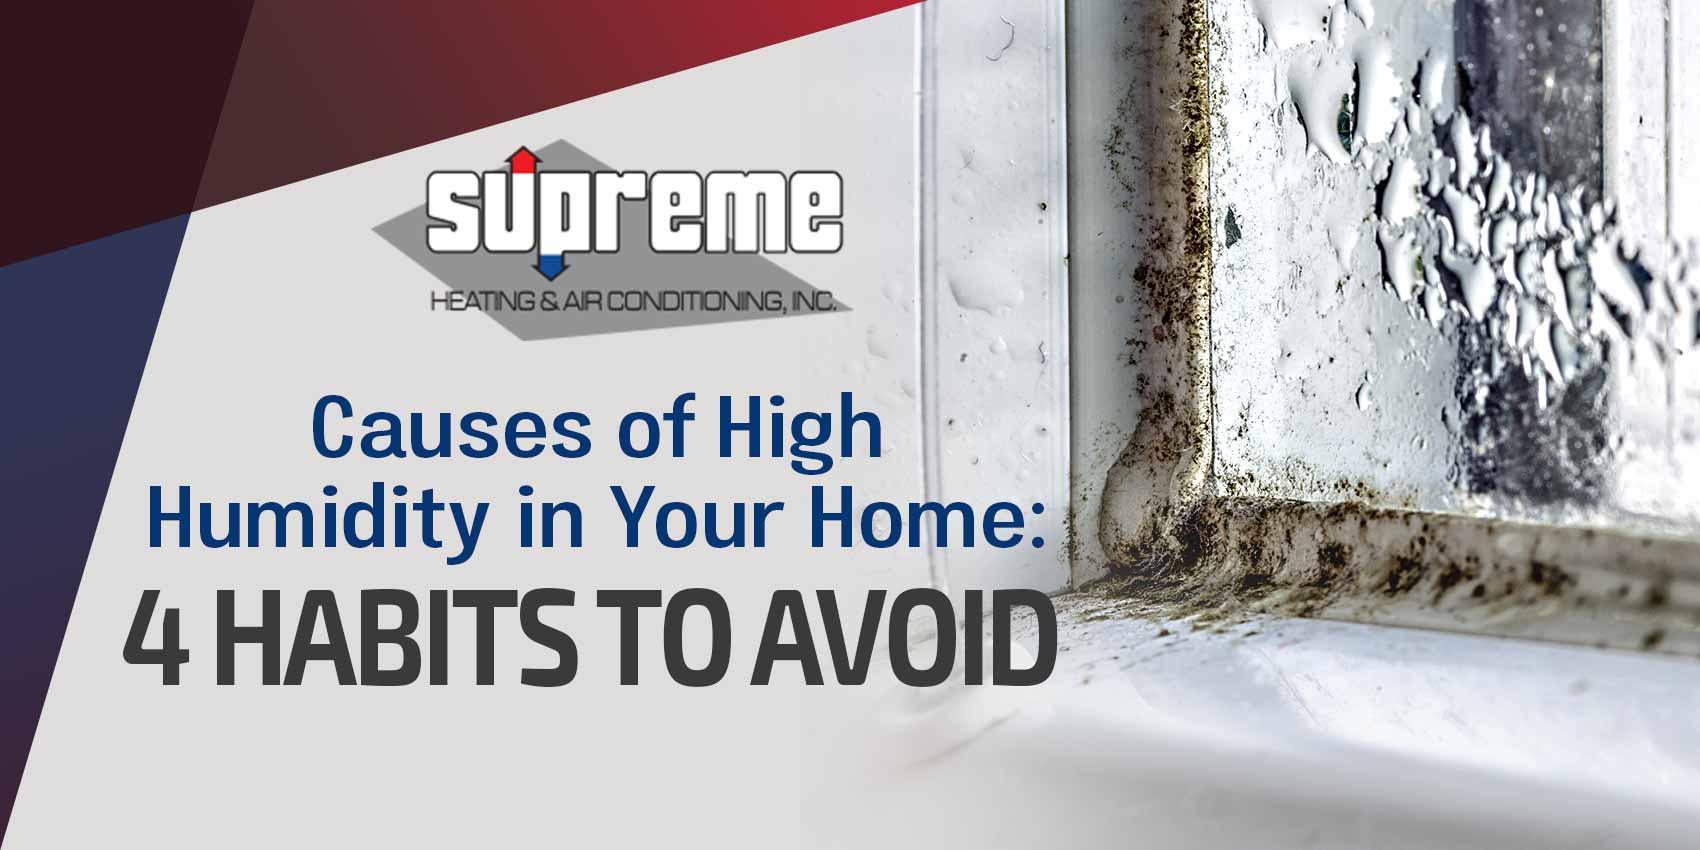 Cause of High Humidity in Your Home: 4 HABITS TO AVOID